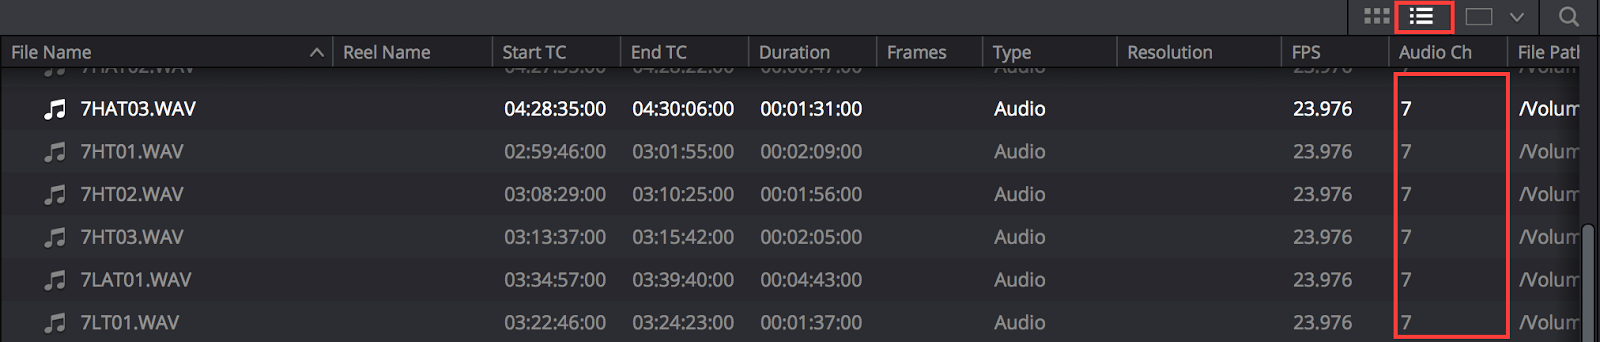 DaVinci Resolve List view